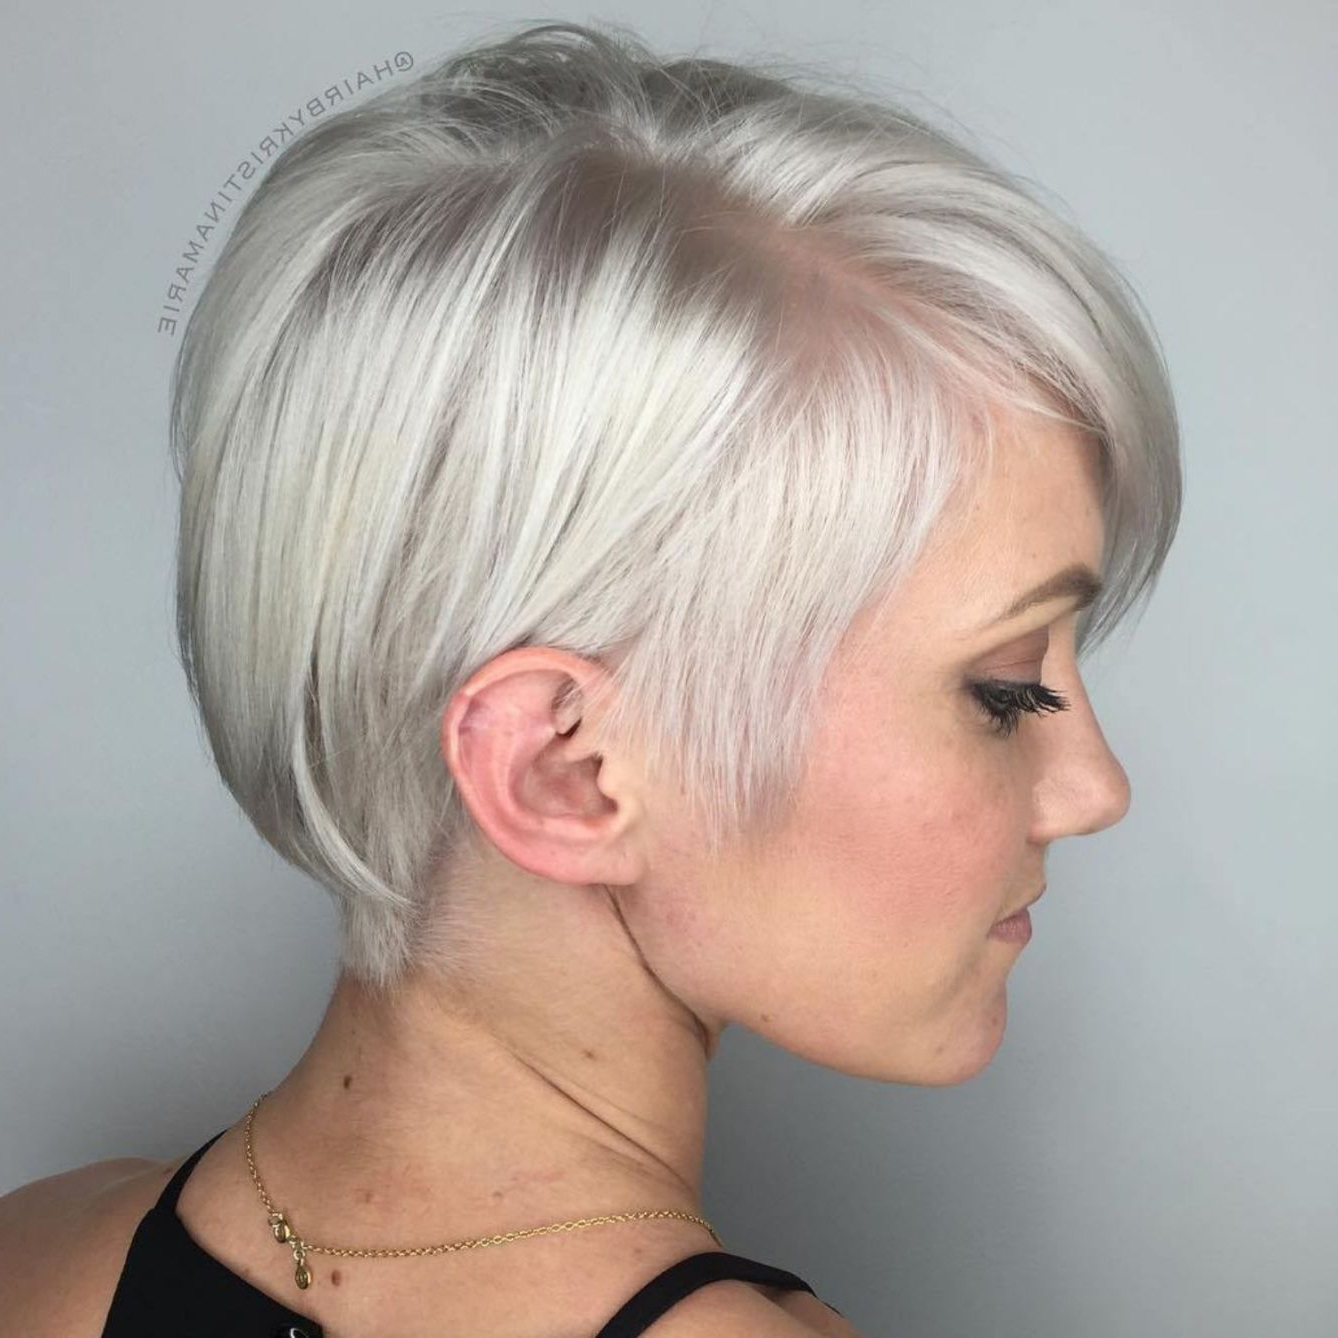 100 Mind Blowing Short Hairstyles For Fine Hair (Gallery 15 of 20)